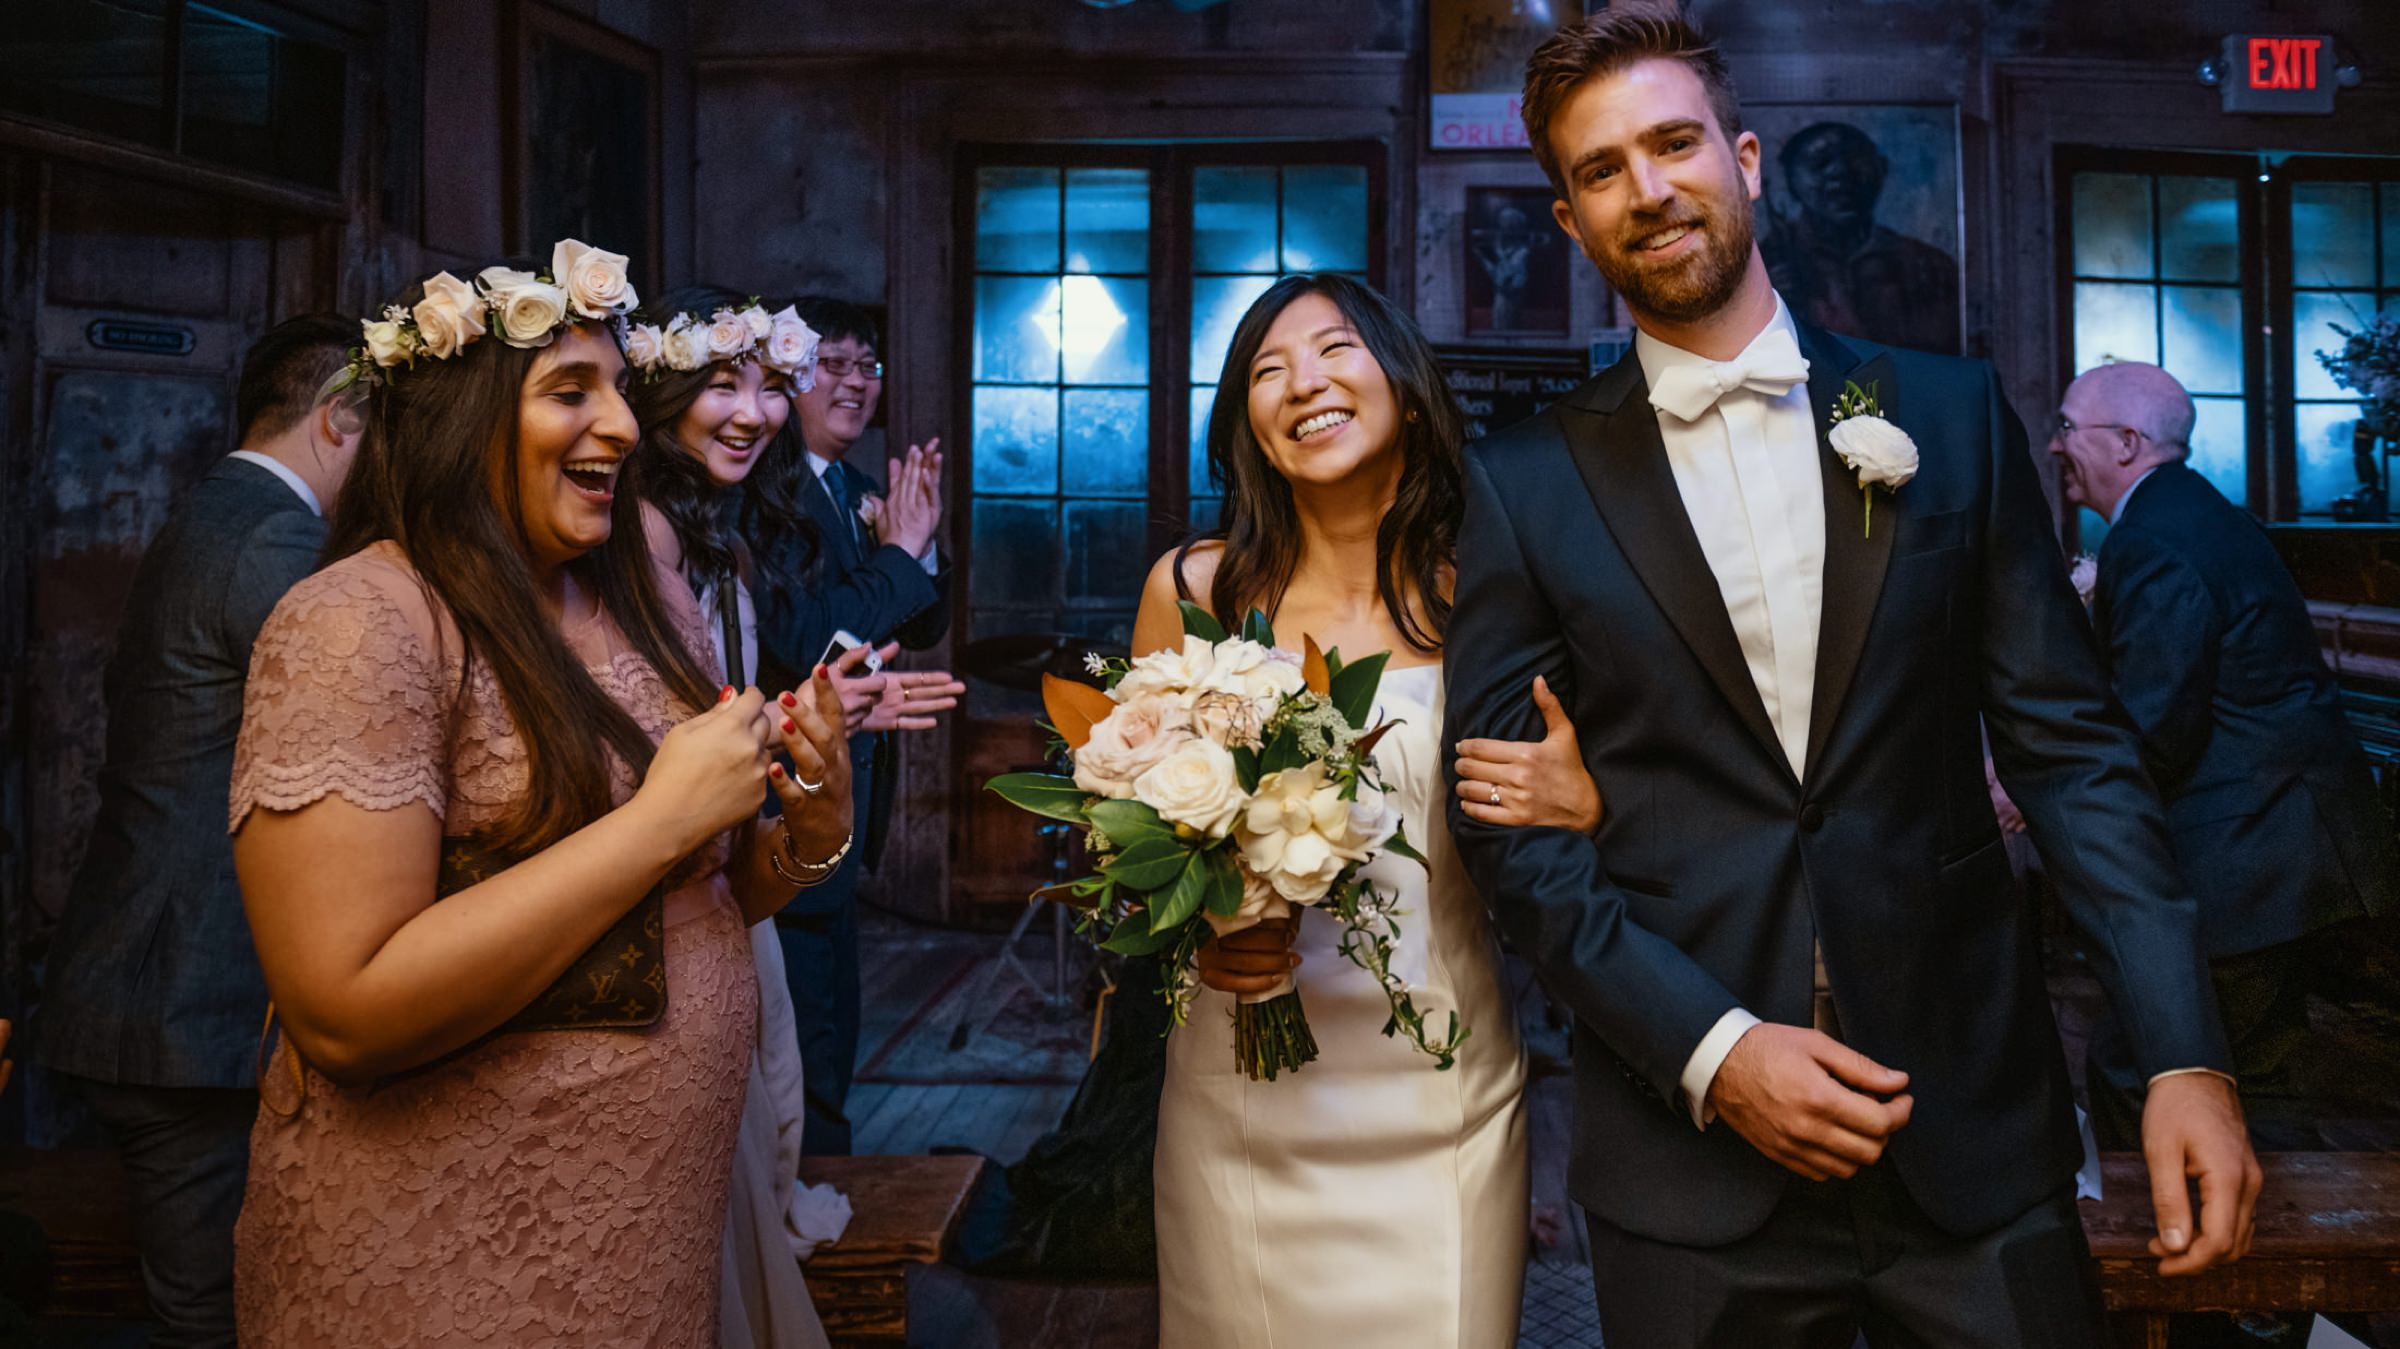 bride and groom happily walking into reception cheered by their friends-new orleans-austin-houston- photo by Dark Roux